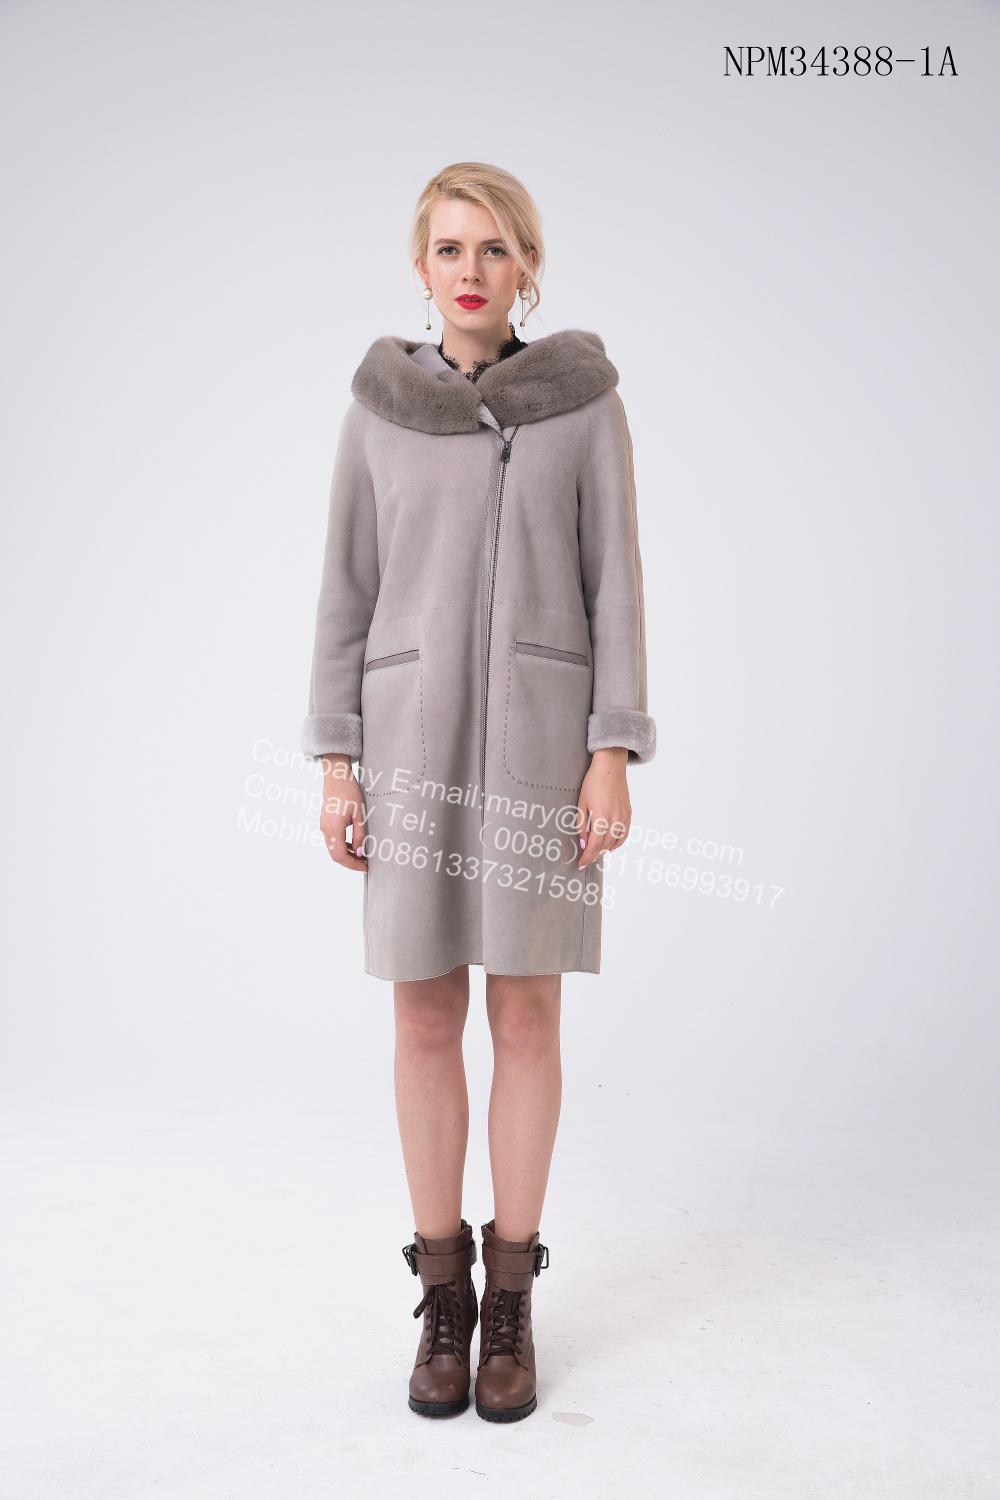 Women Bias Zipper Coat